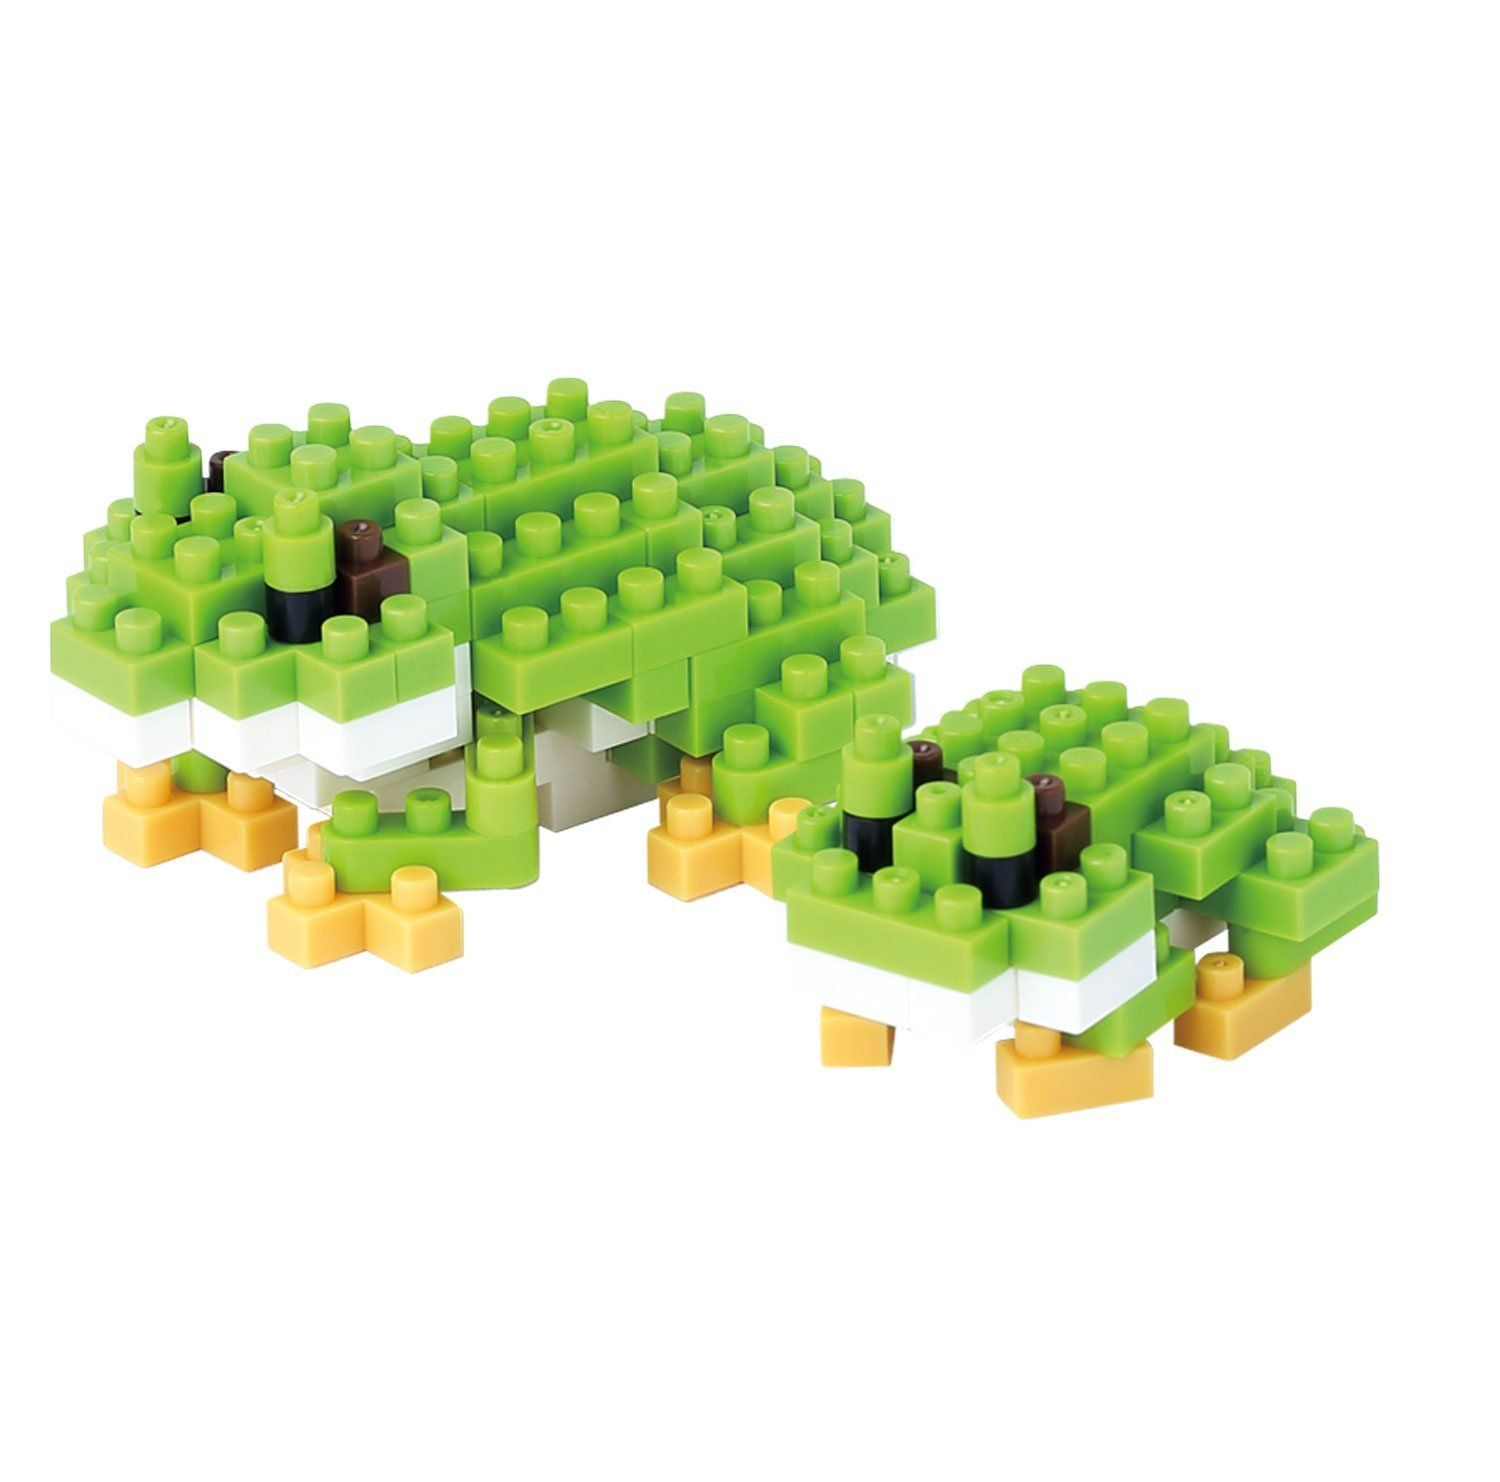 Tree Frog Mini Building Set by Nanoblock (NBC161) by nanoblock